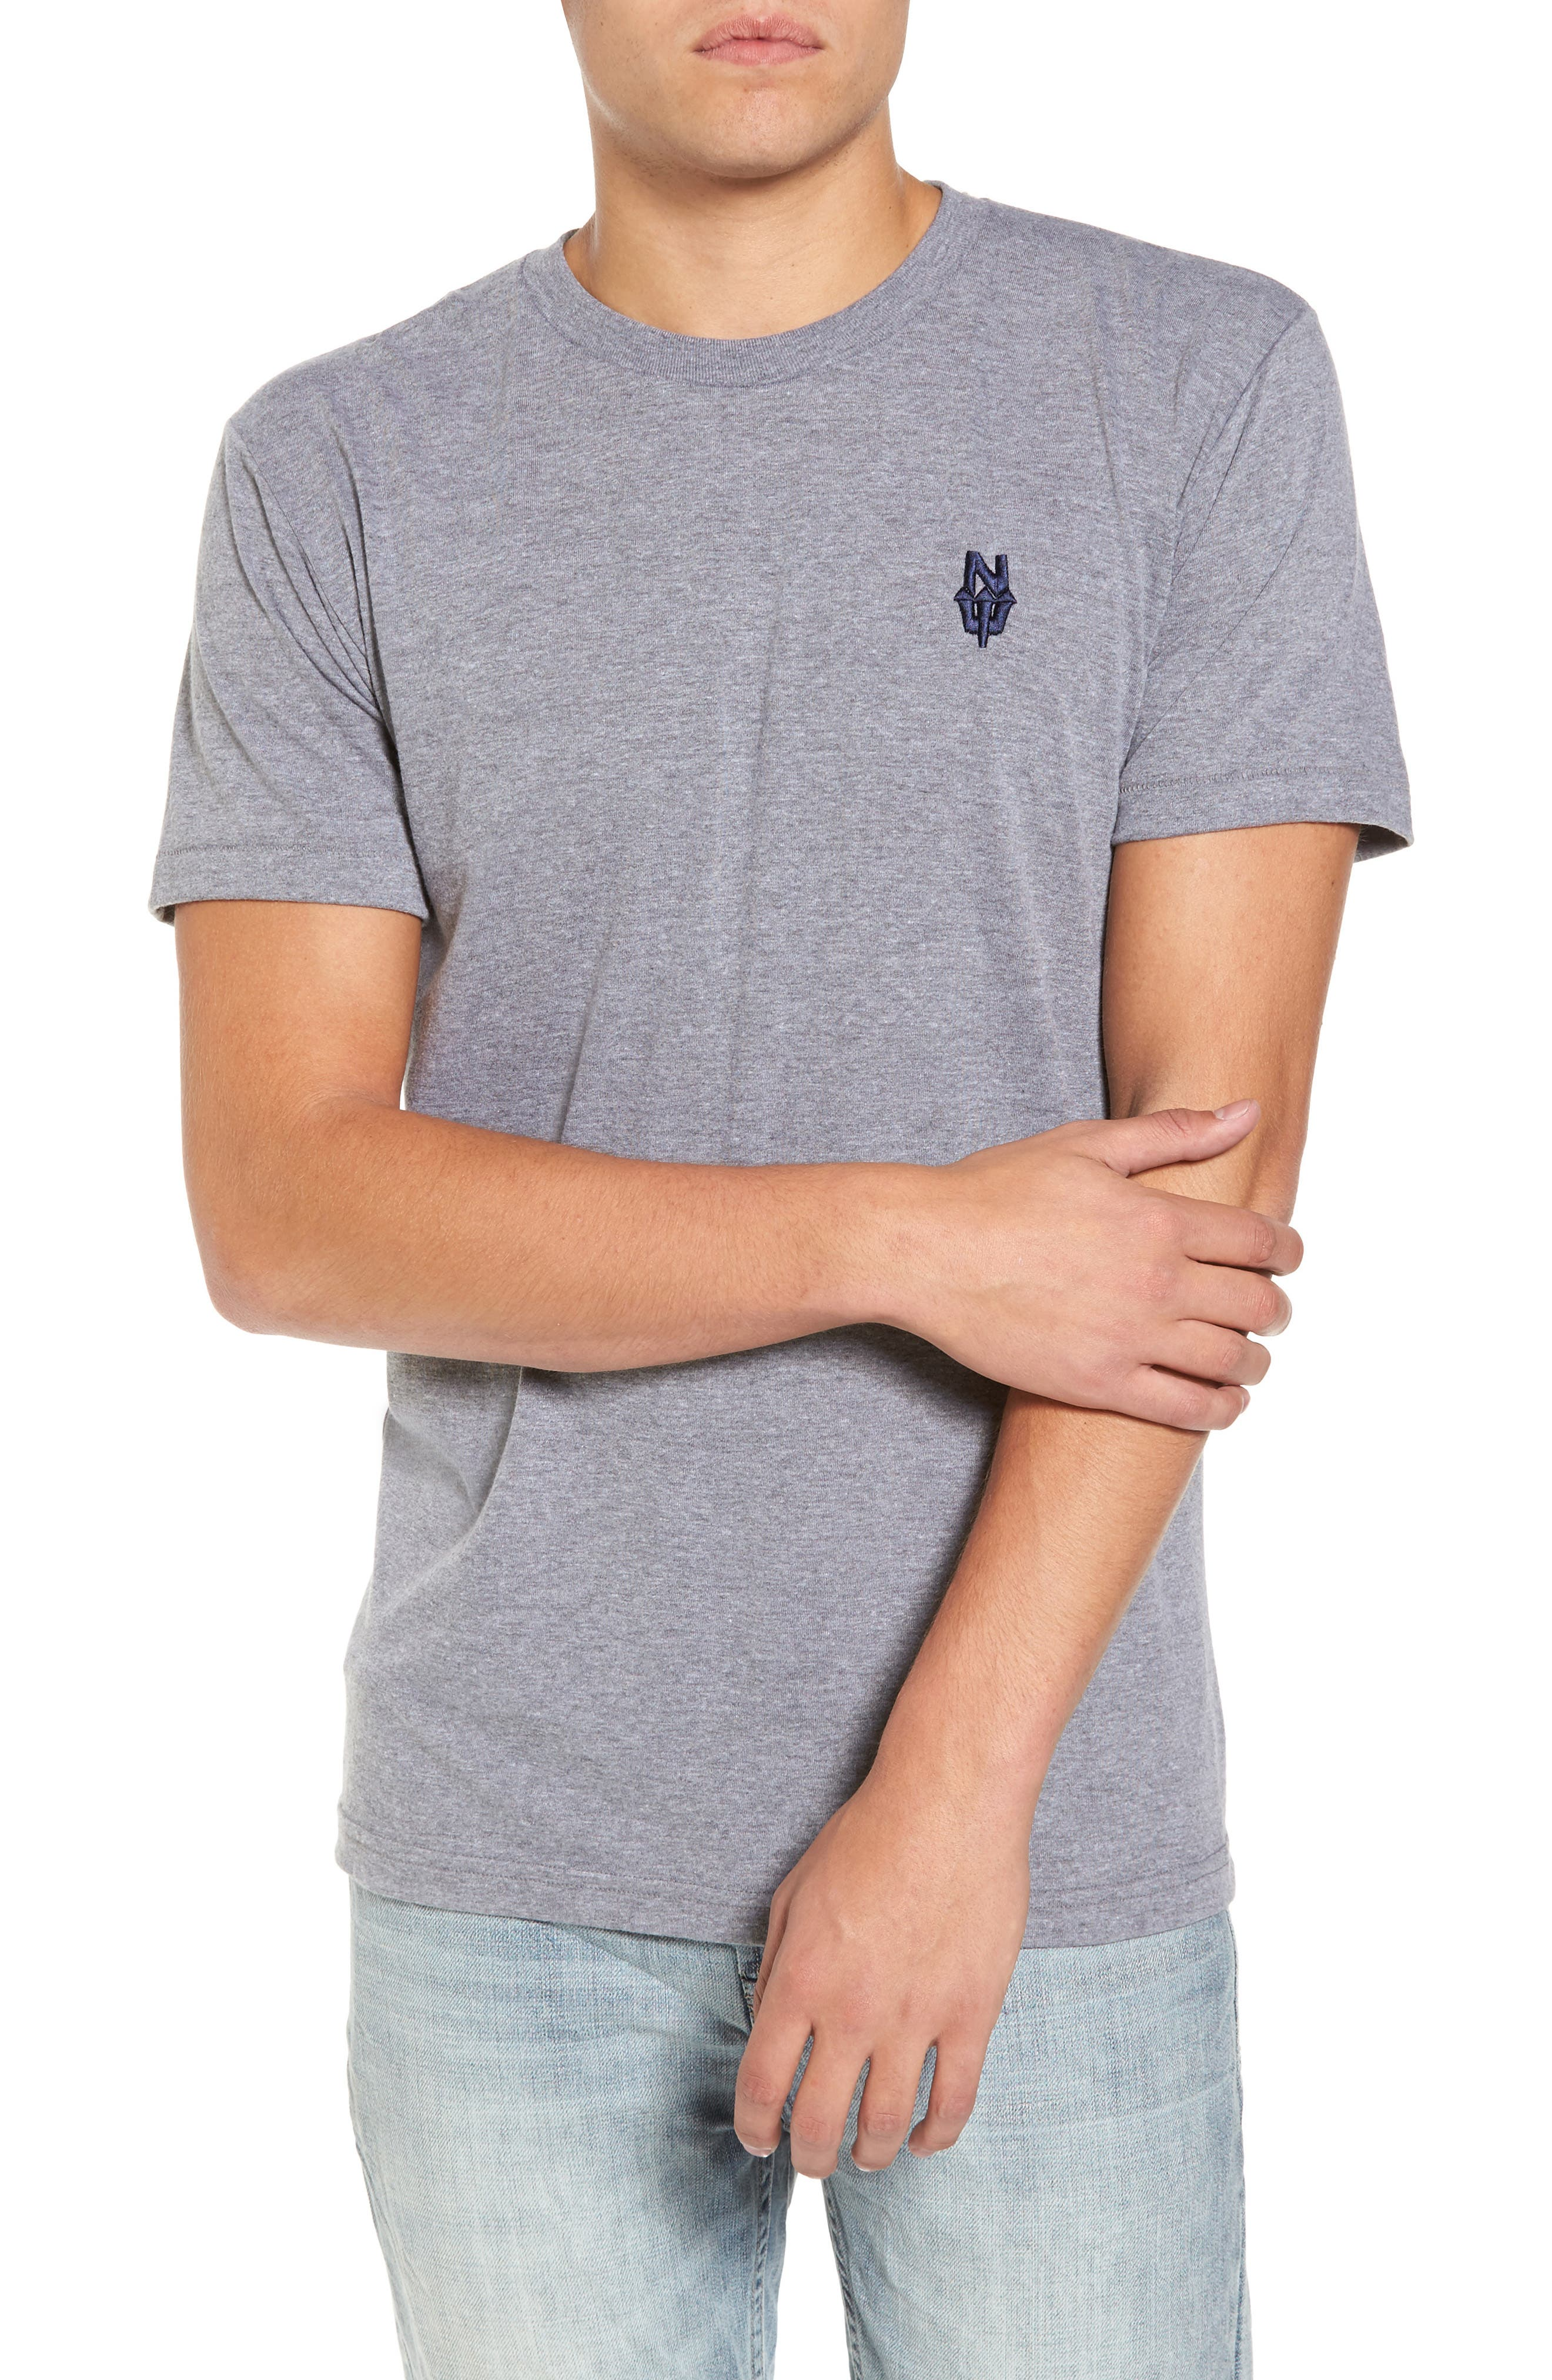 Main Image - Casual Industrees NW Trident Embroidered T-Shirt